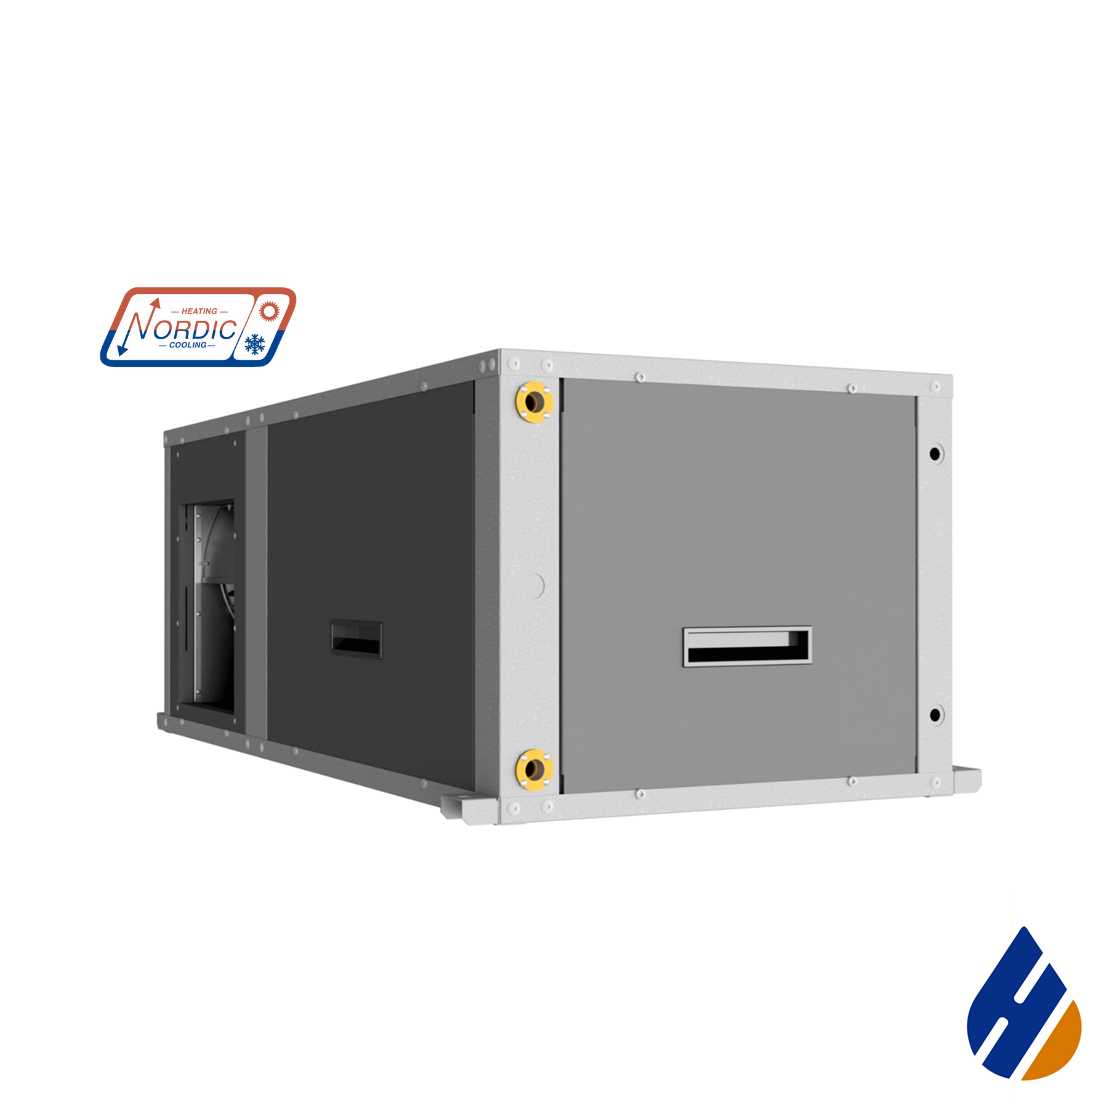 Nordic RH Series Commercial Water to Air Heat Pumps